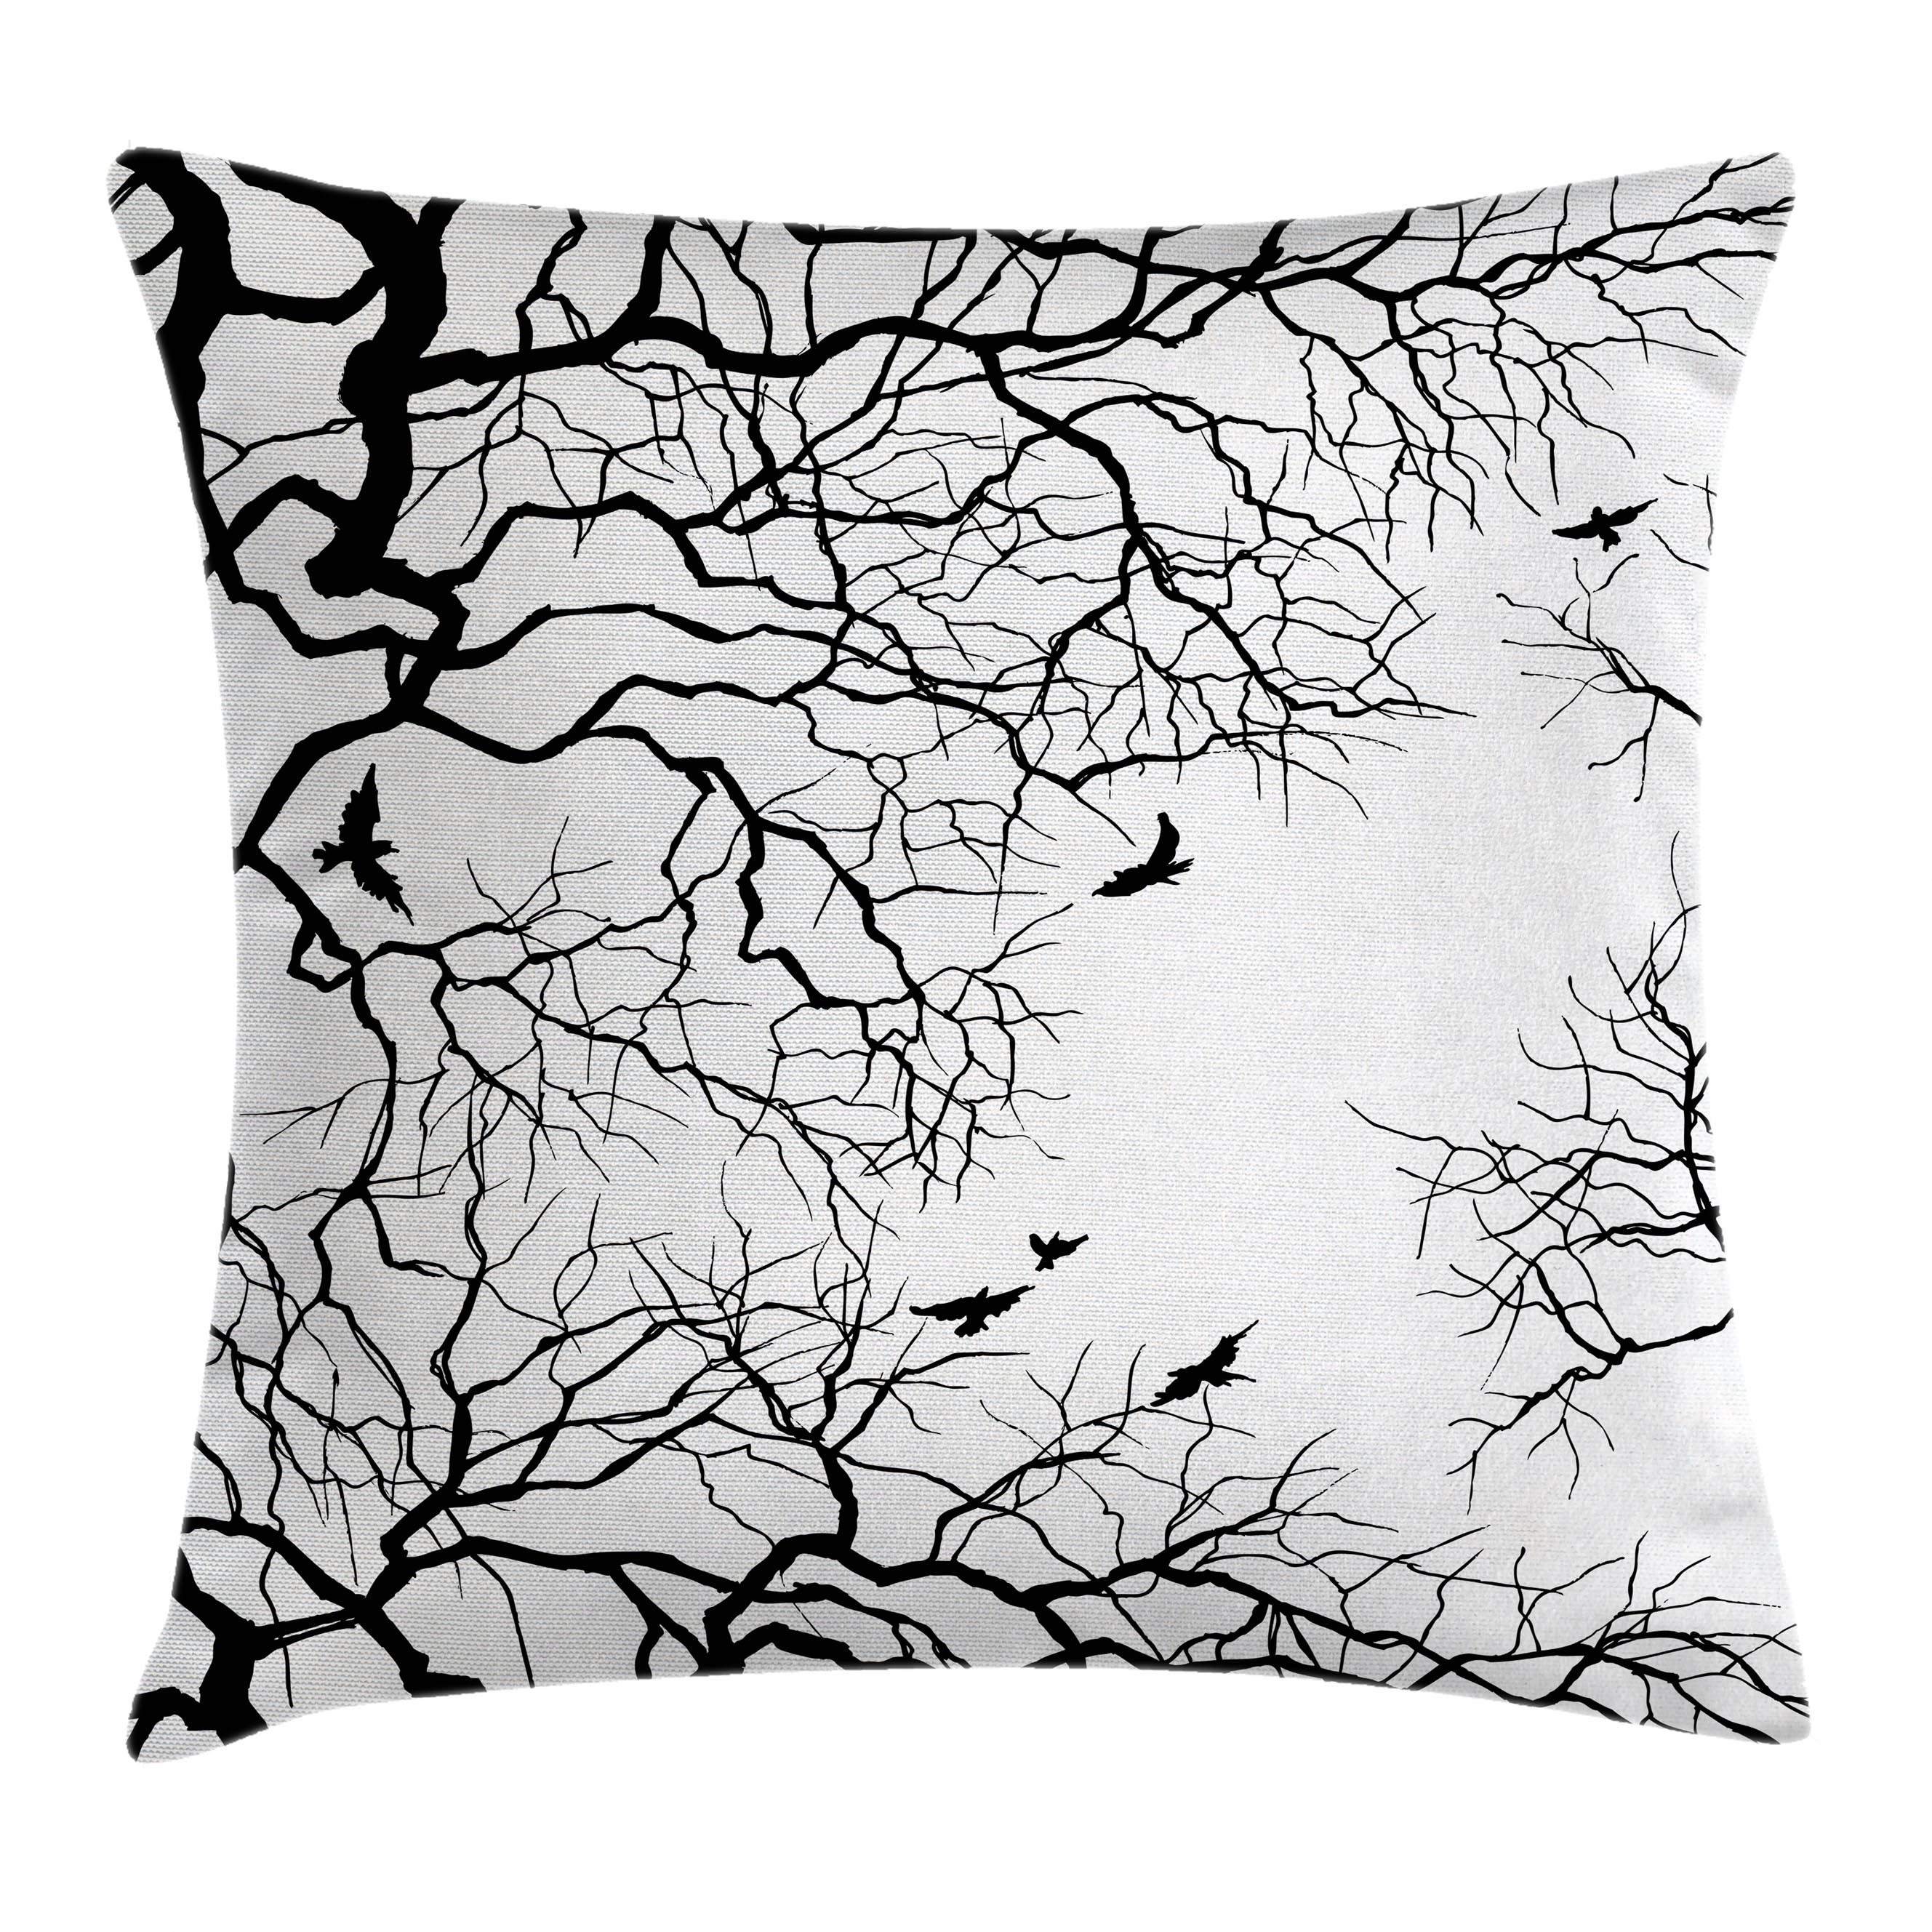 Nature Decor Throw Pillow Cushion Cover, Birds Flying over Twiggy Tree Branches Stylish Autumn Season Sky View Art, Decorative Square Accent Pillow Case, 16 X 16 Inches, Black White, by Ambesonne